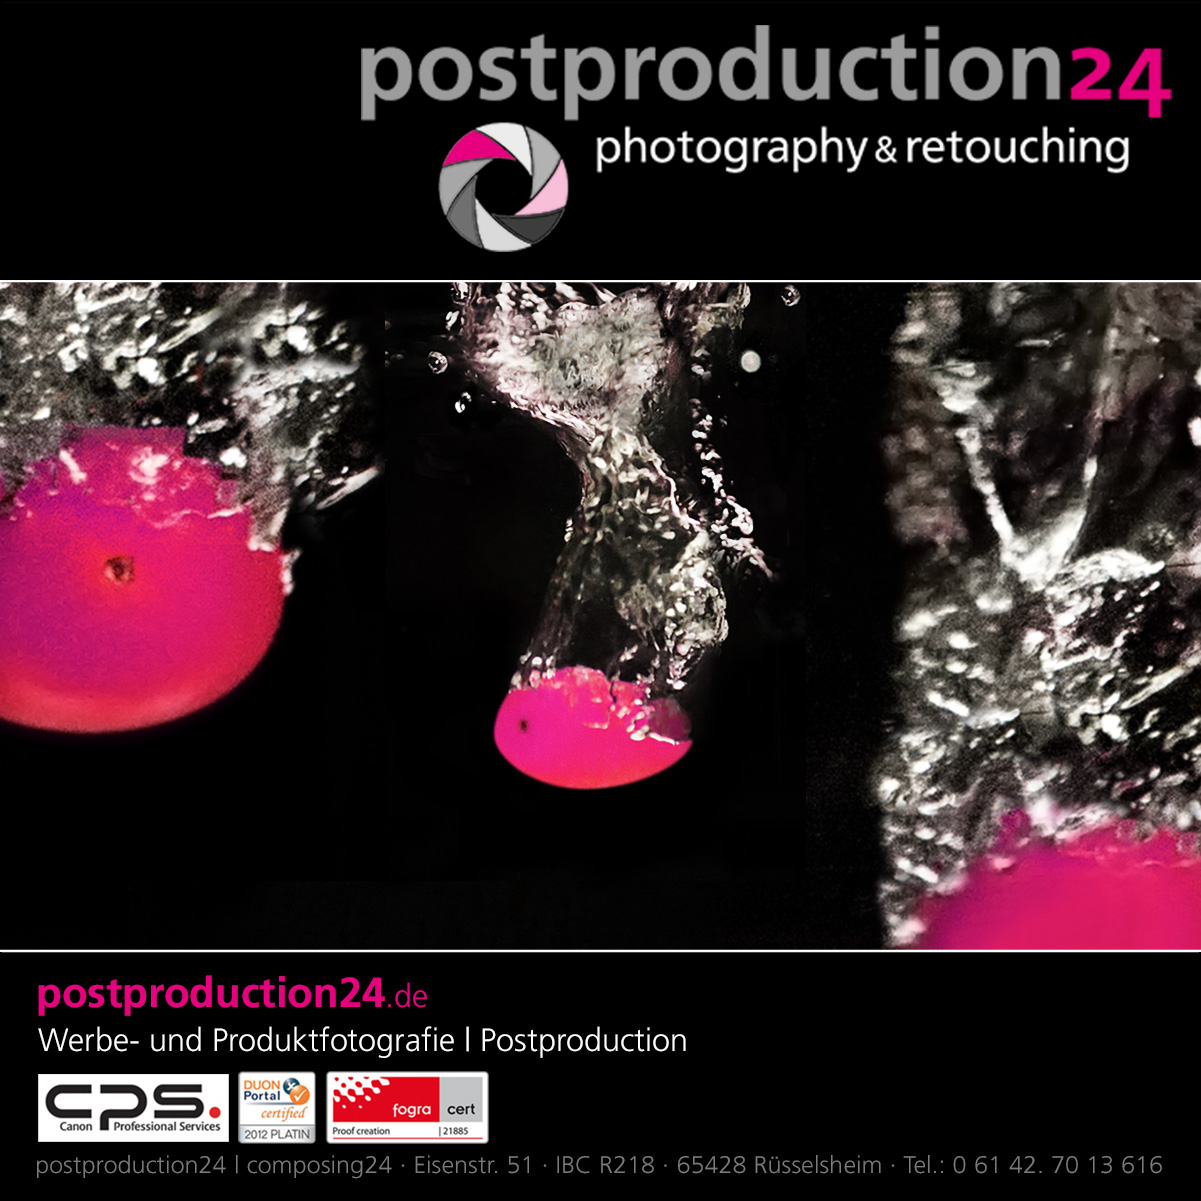 postproduction24 - fotografie, bildbearbeitung & retusche